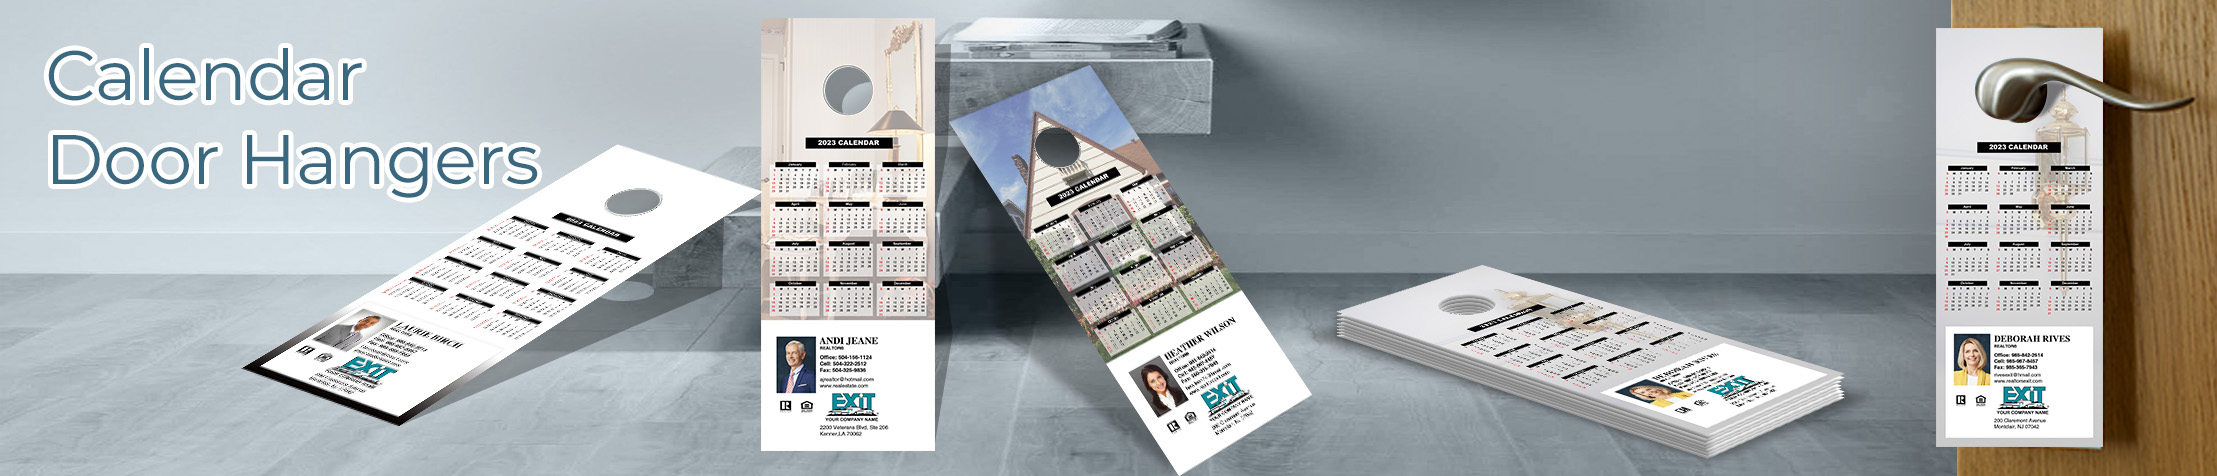 Exit Realty  Calendar Door Hangers - Exit Realty approved vendor 2019 calendars printed on door knockers | BestPrintBuy.com